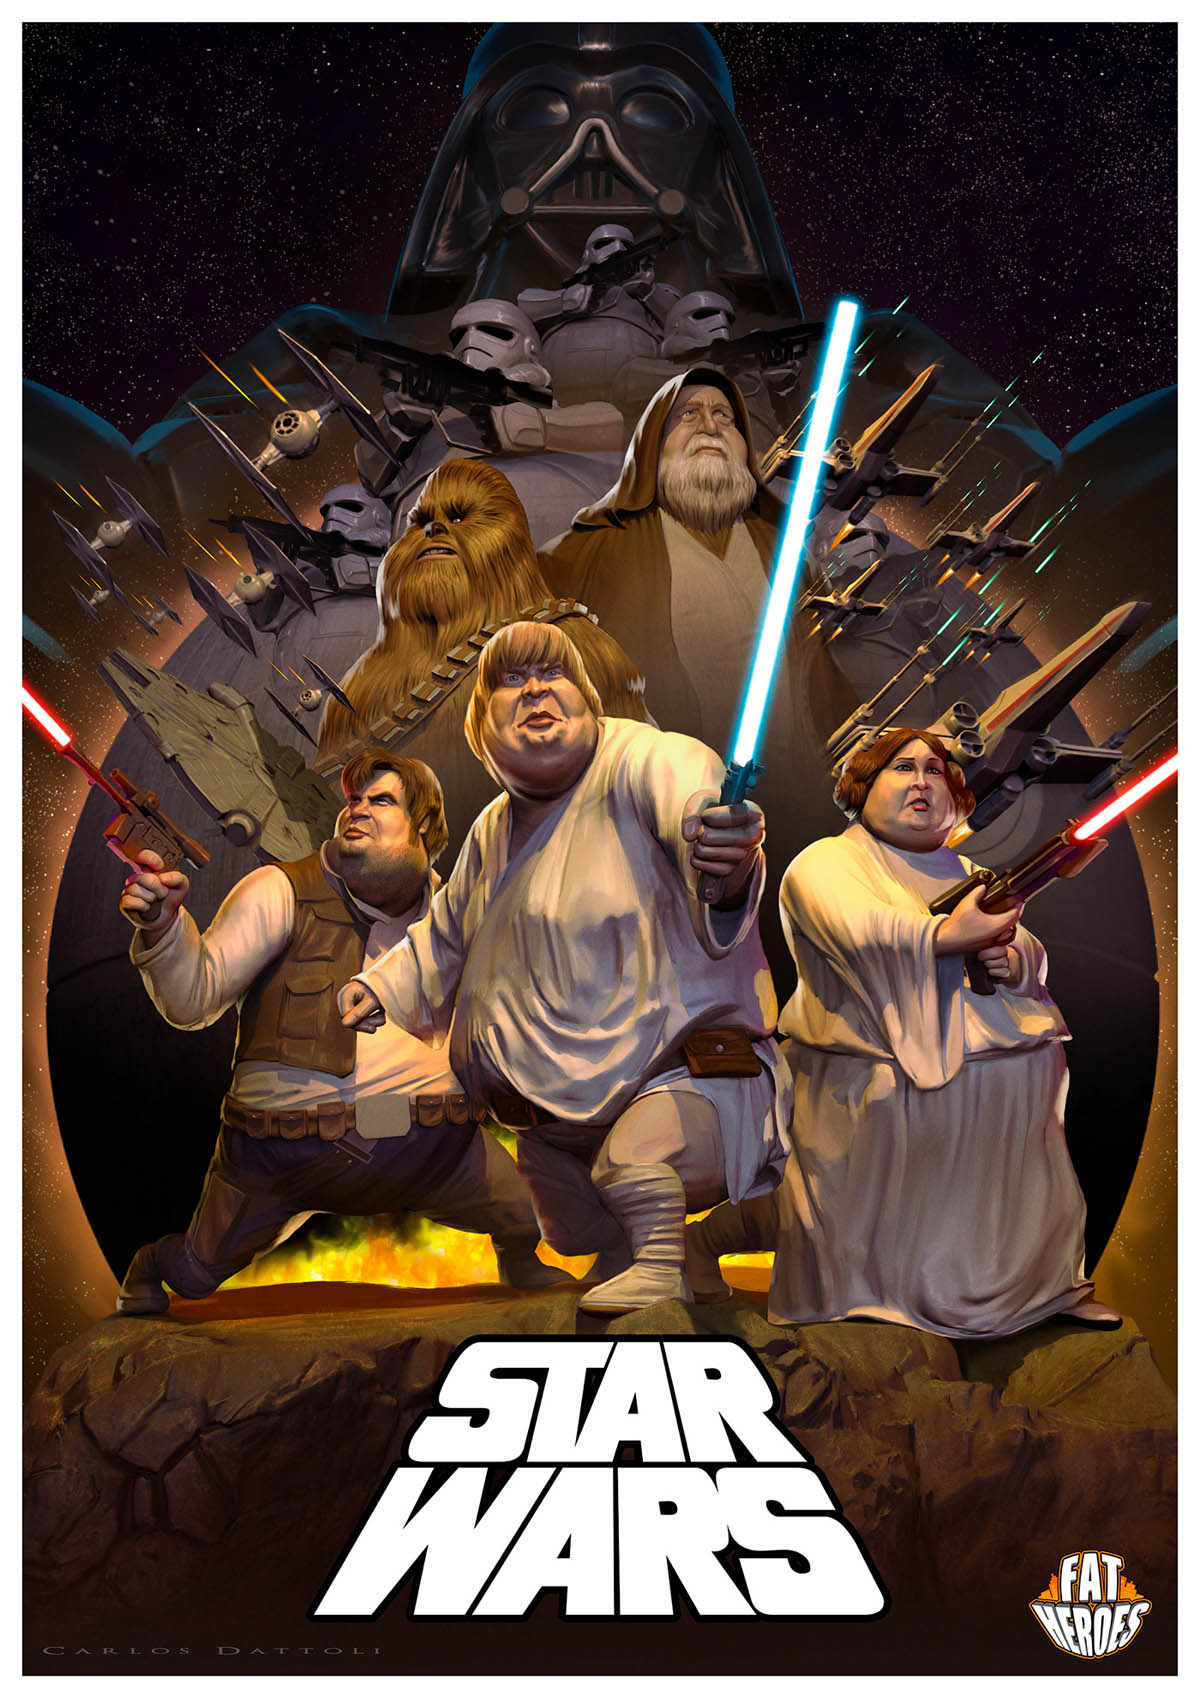 digital art illustration funny fat heros star wars